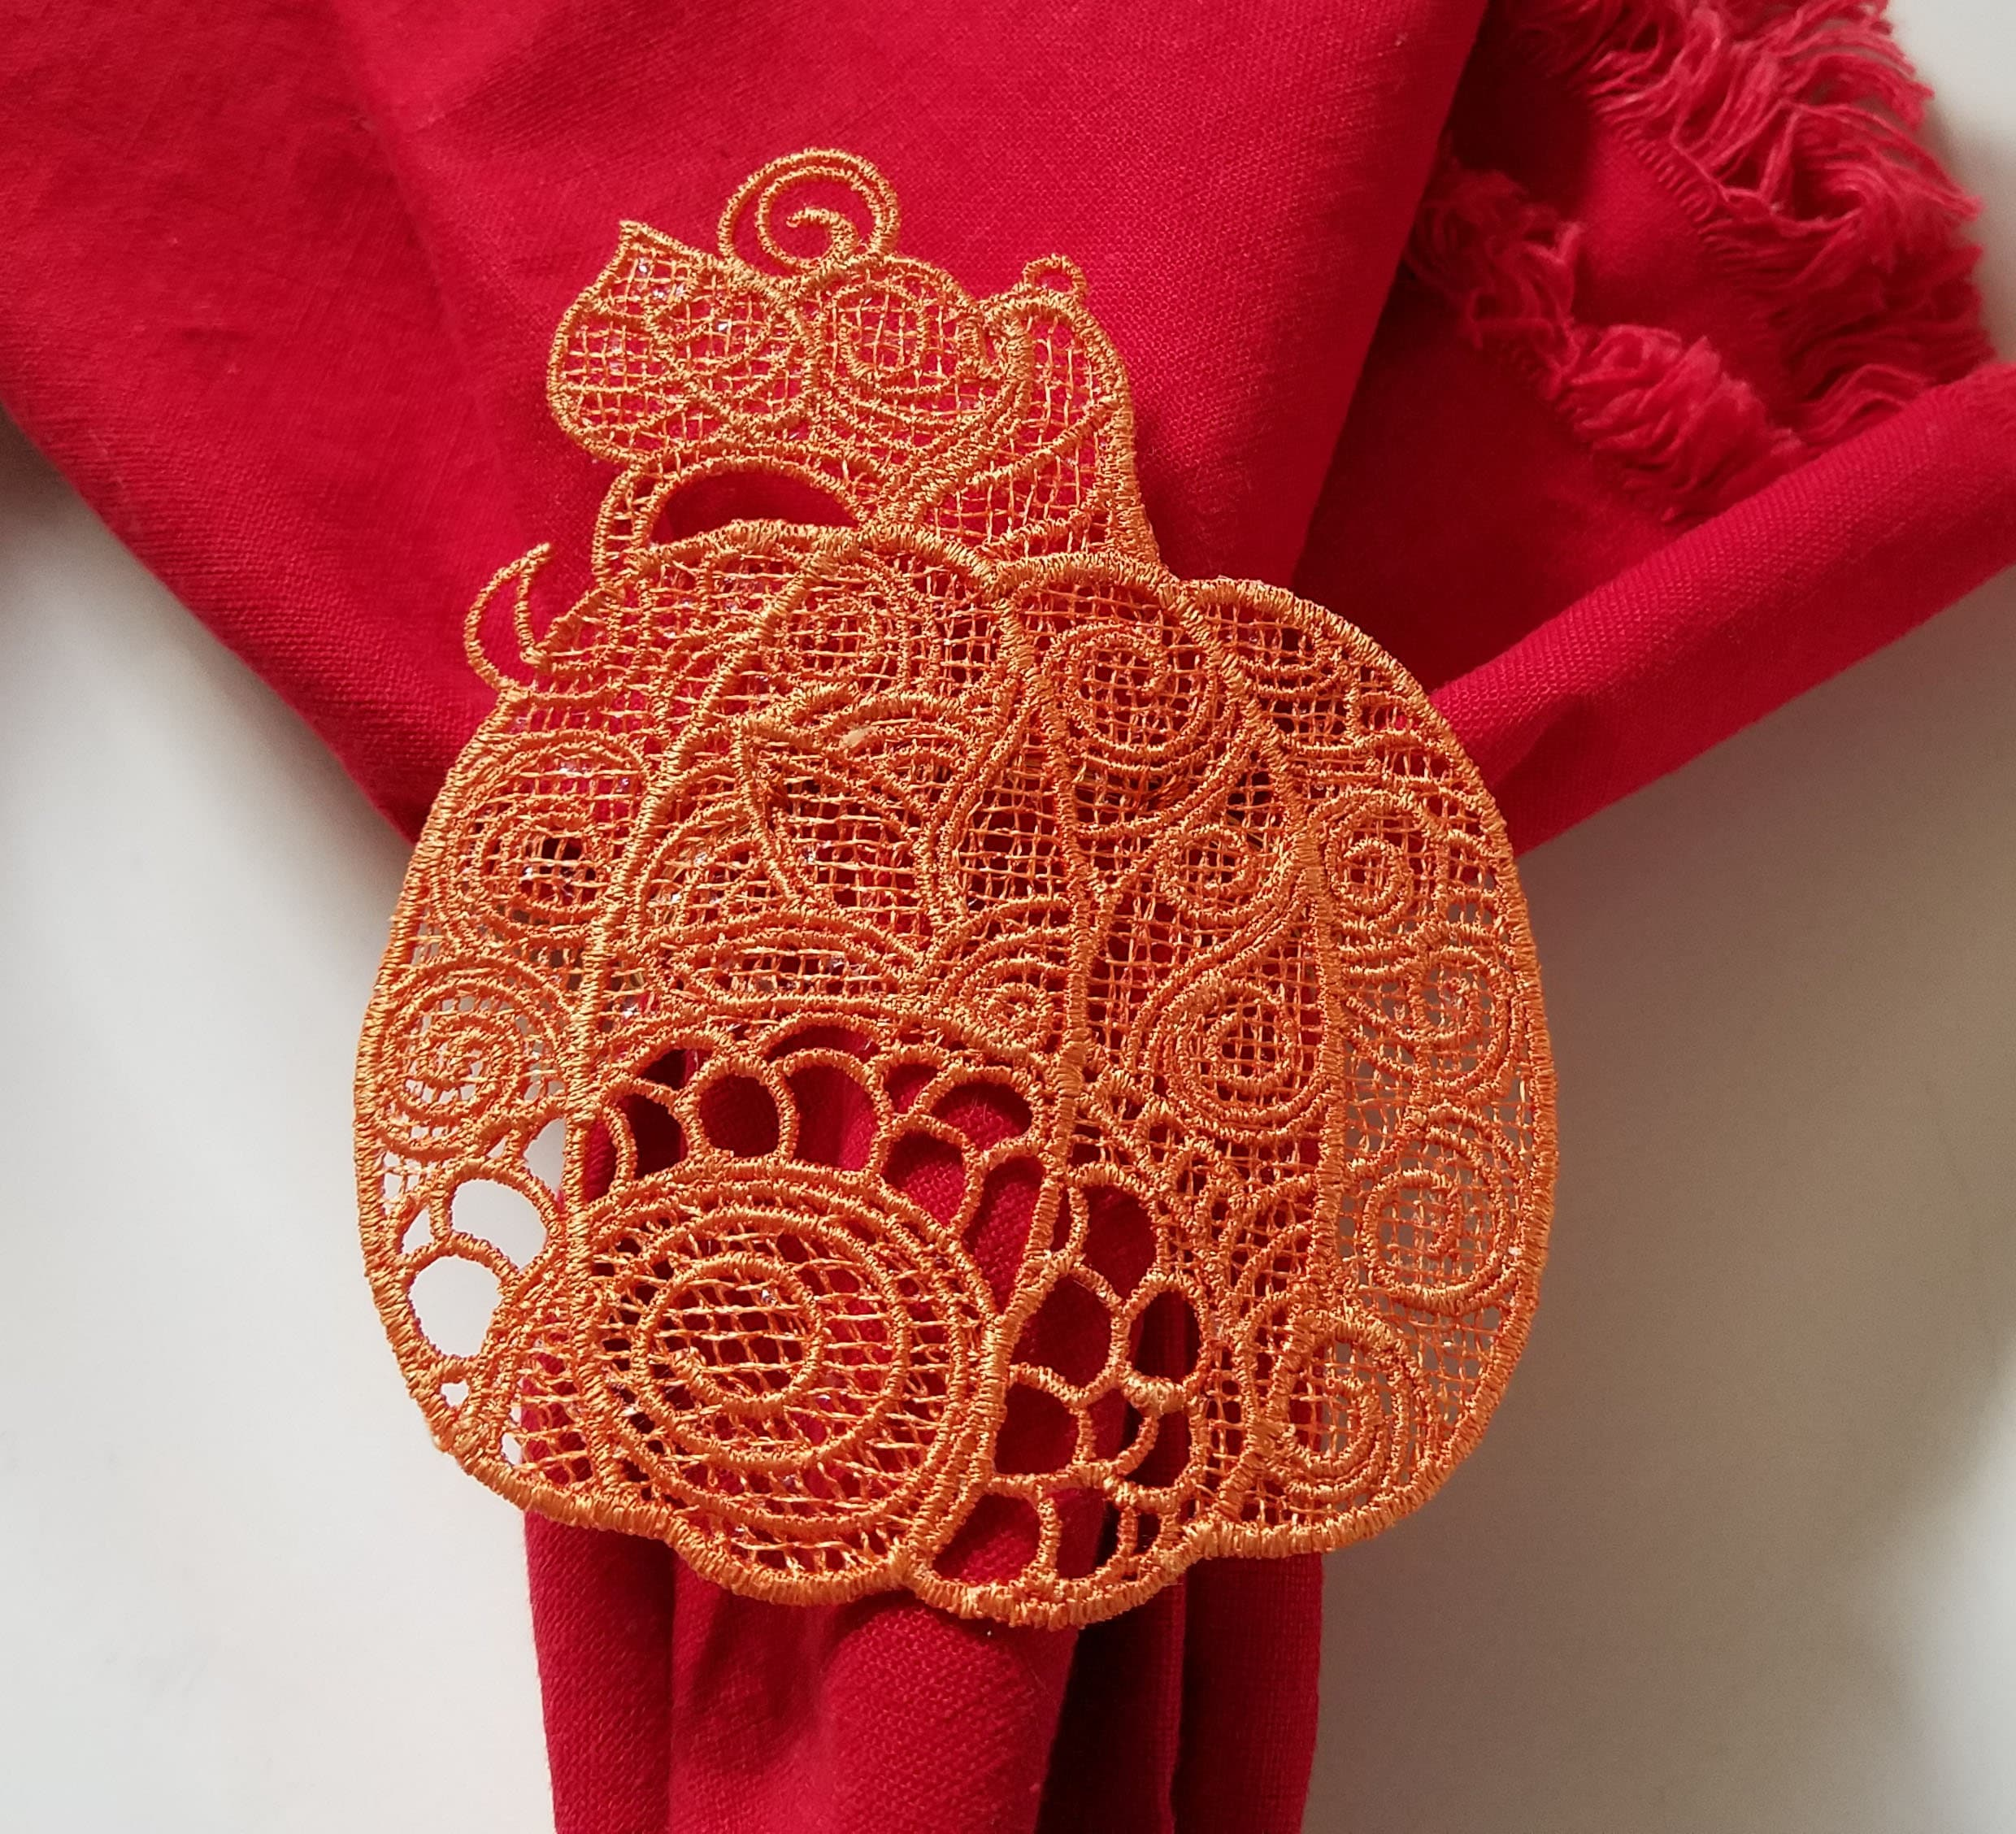 Pumpkin Free Standing Lace Machine Embroidery Design 4x4 Etsy